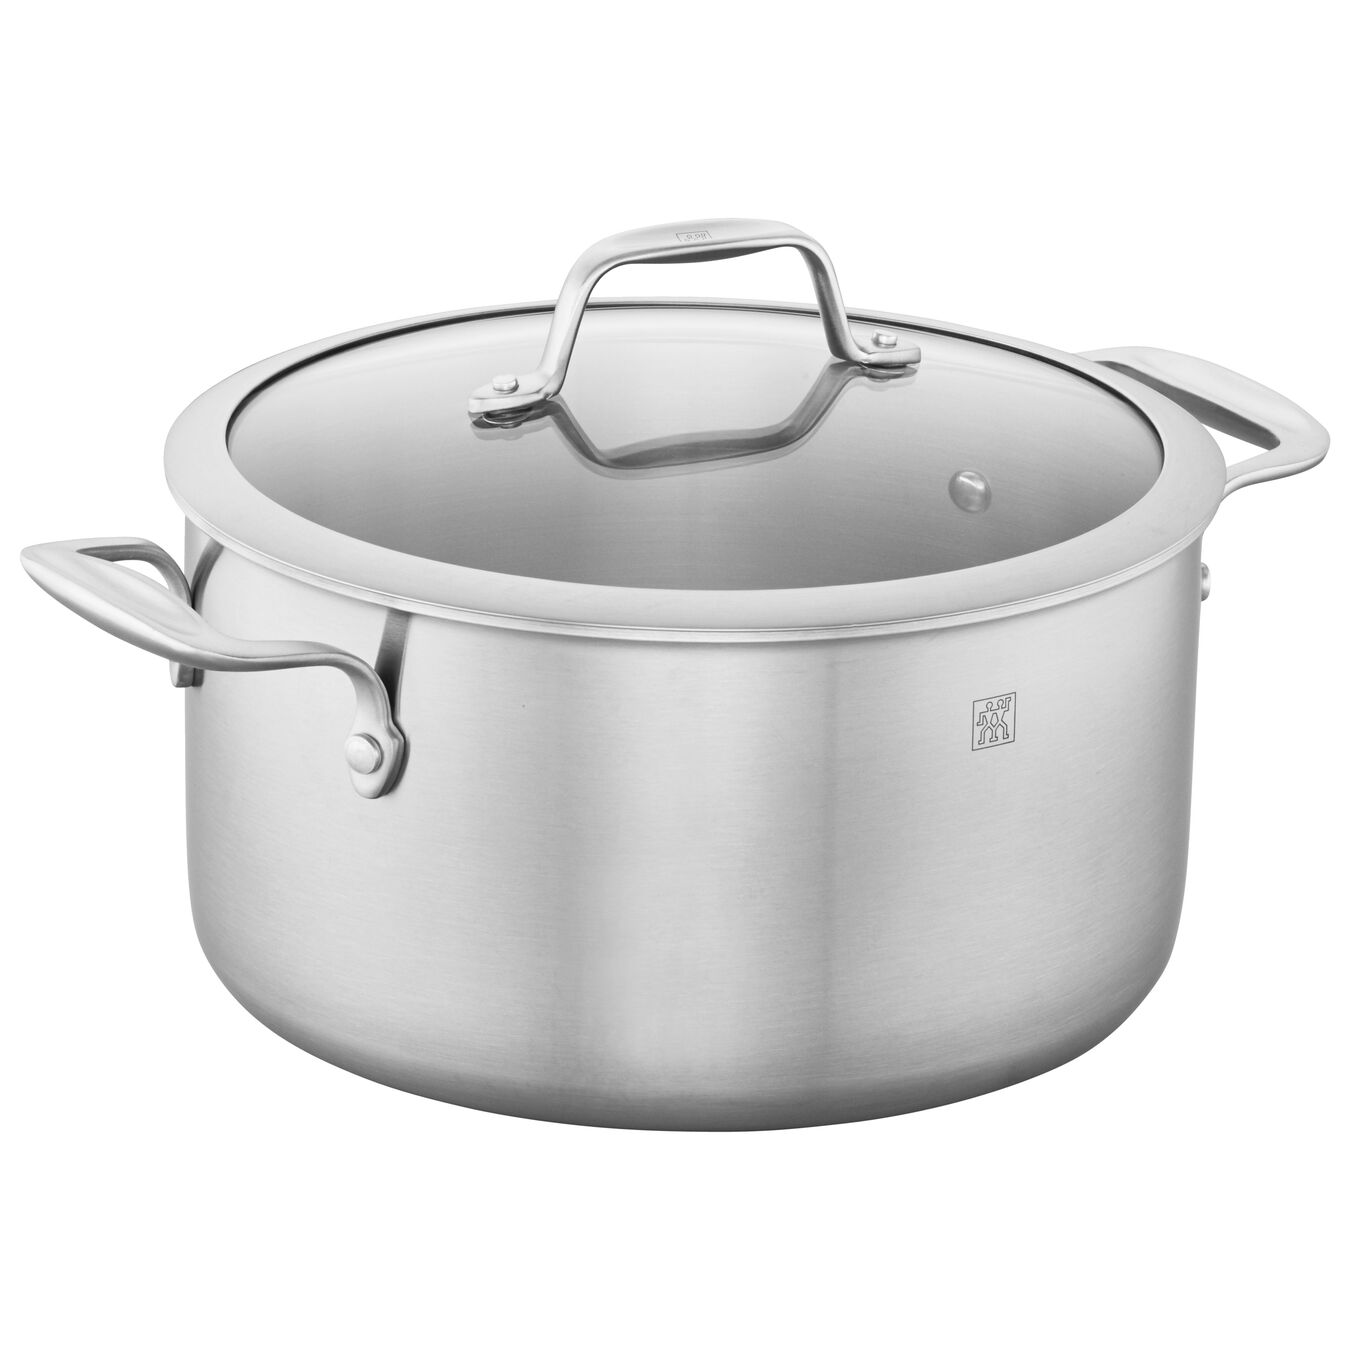 3-ply 12-pc Stainless Steel Cookware Set,,large 5